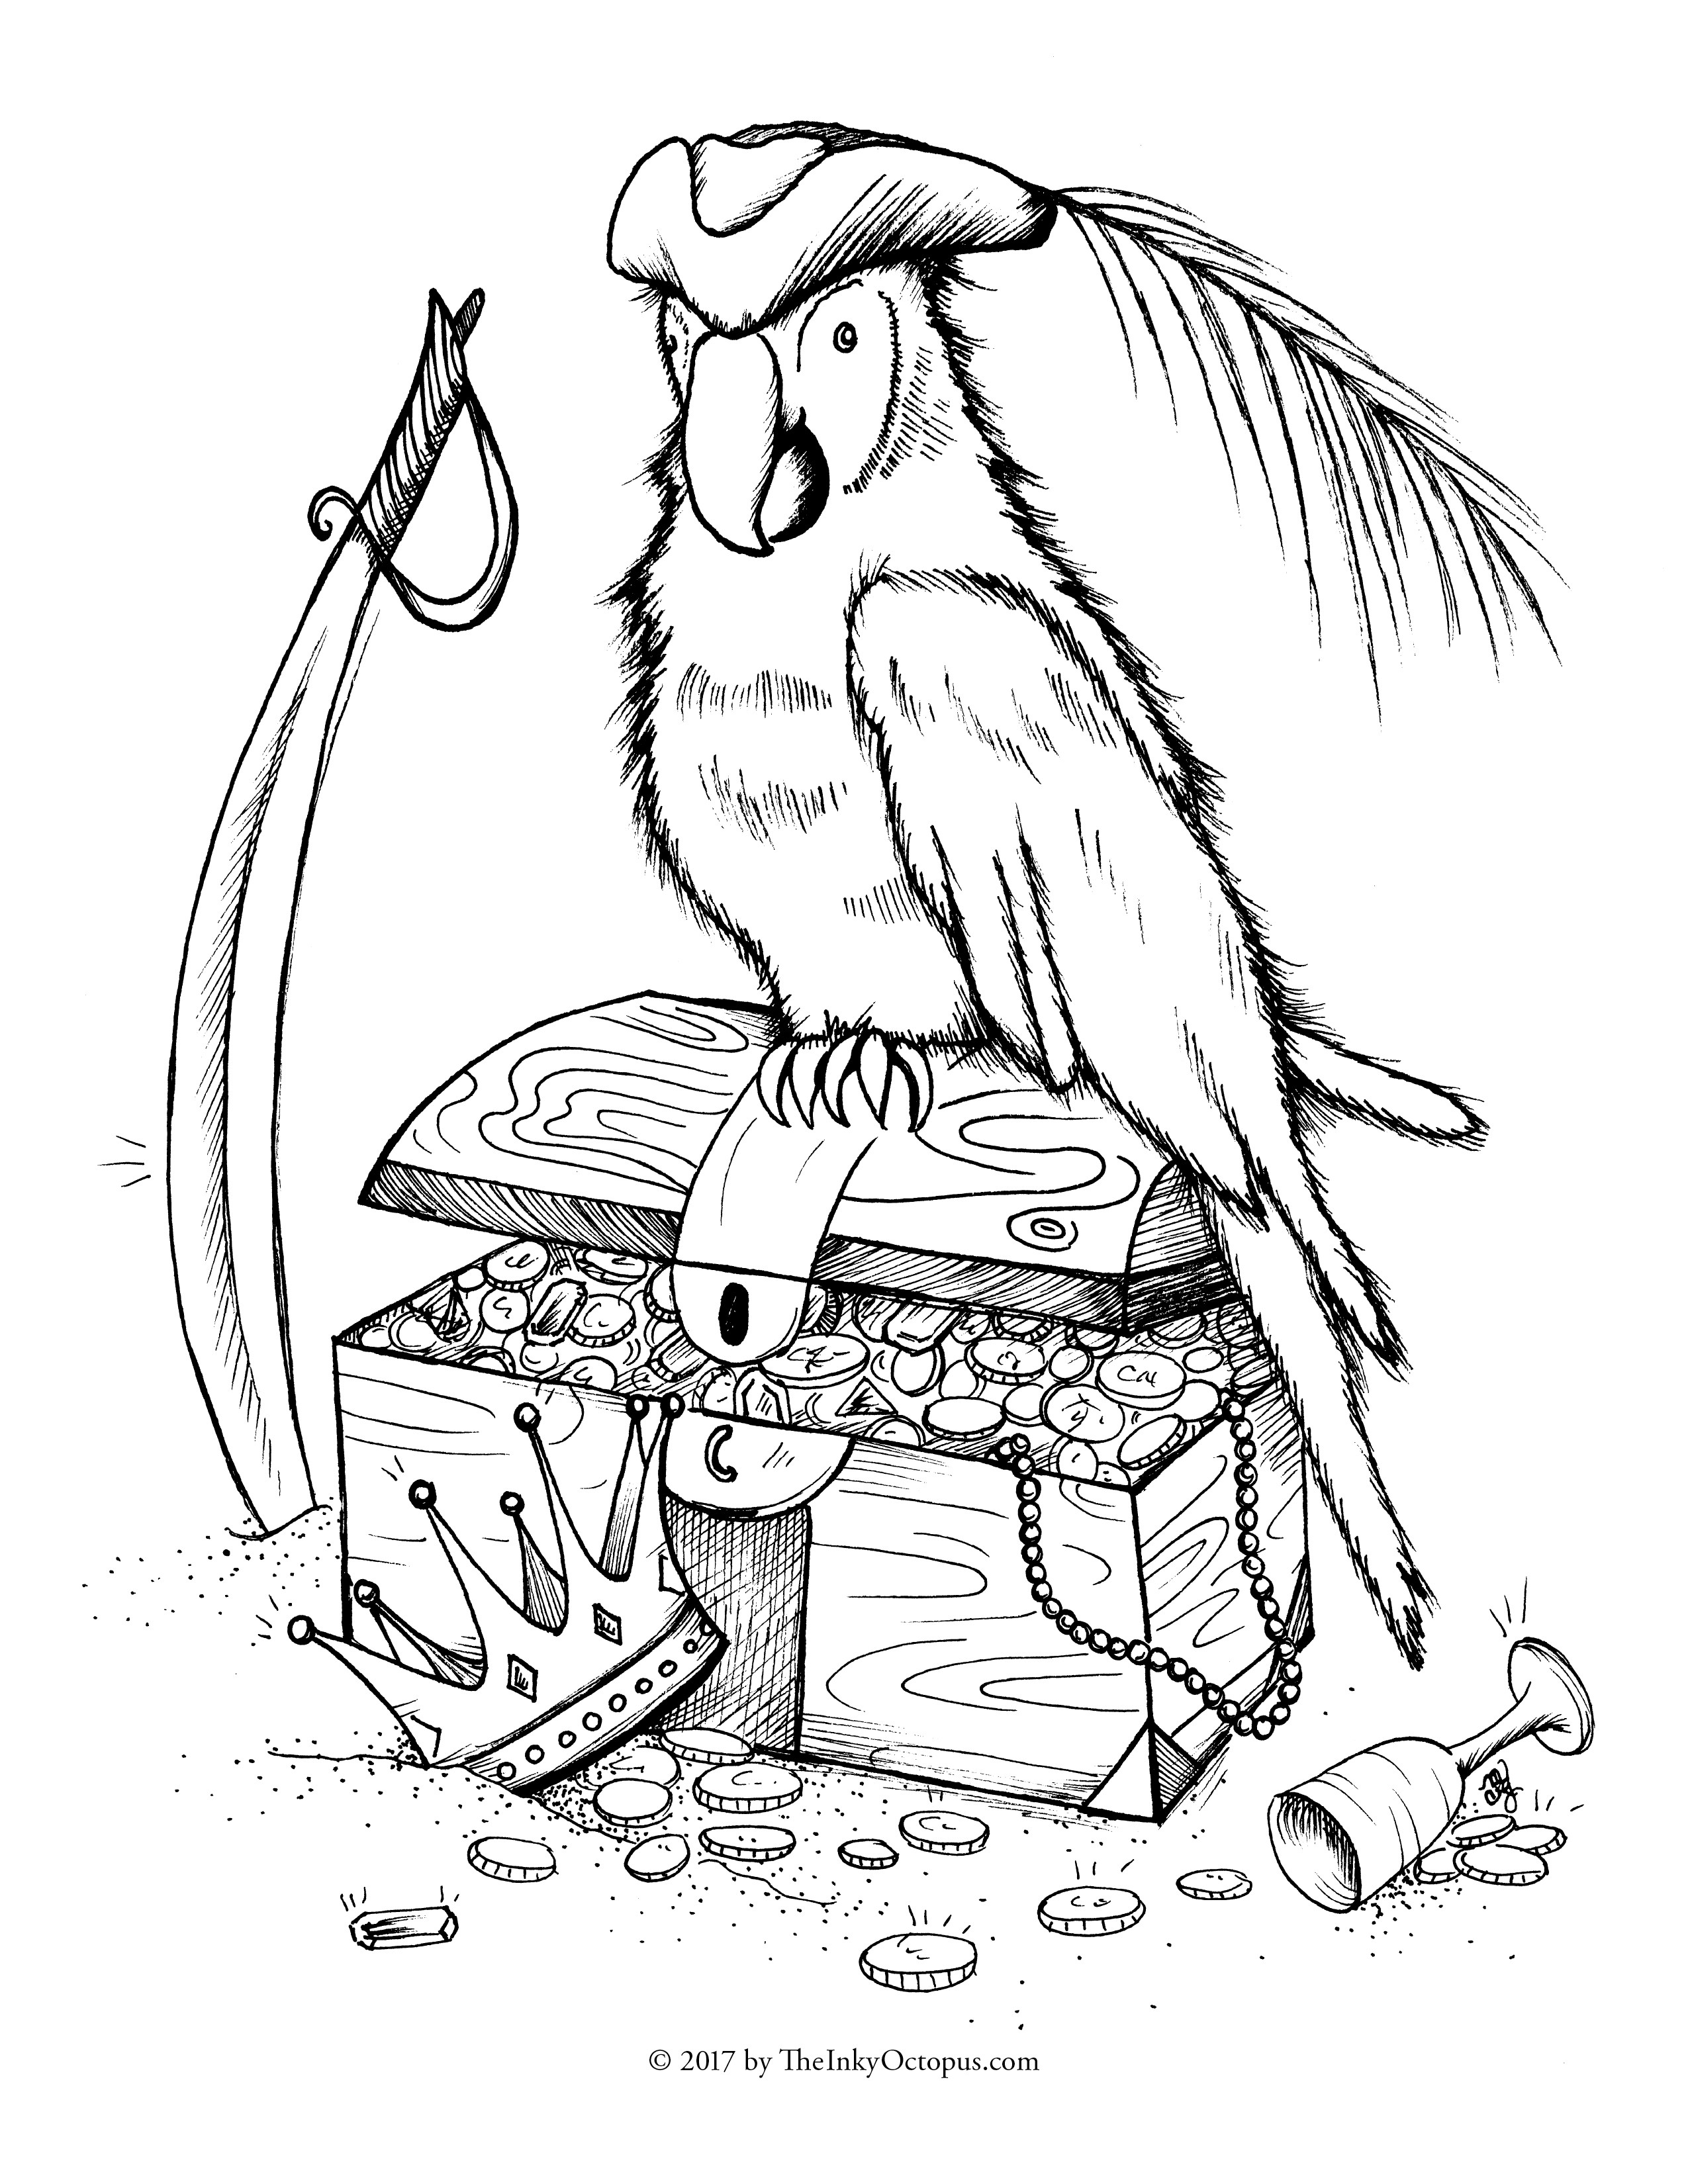 Parrot Coloring Pages Pirate Color Pages Free Printable Parrot Coloring Page The Inky